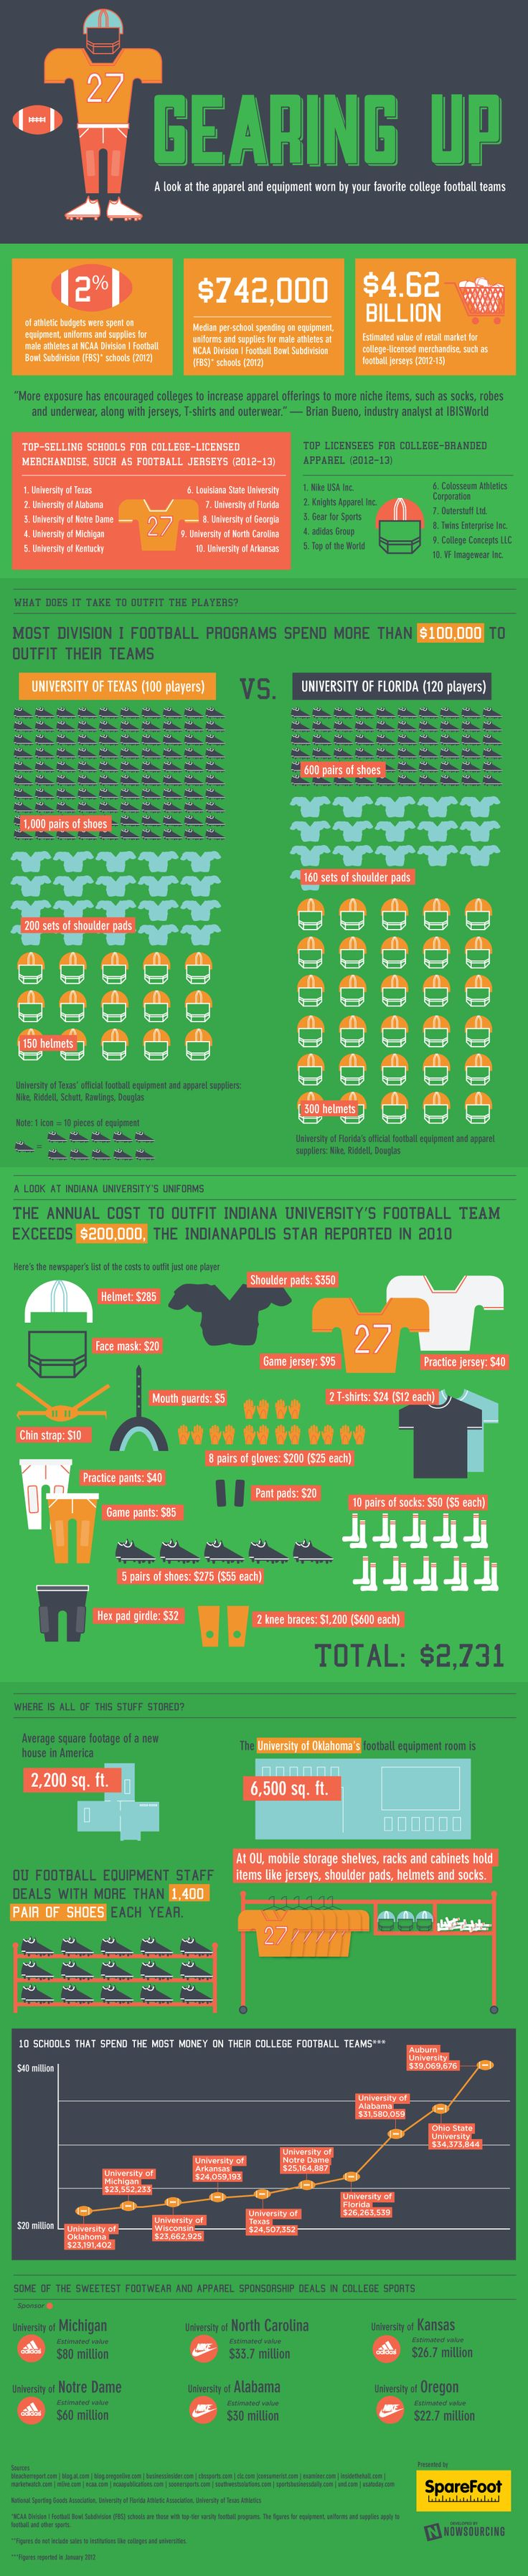 Infographic: Equipment and apparel used by college football teams.